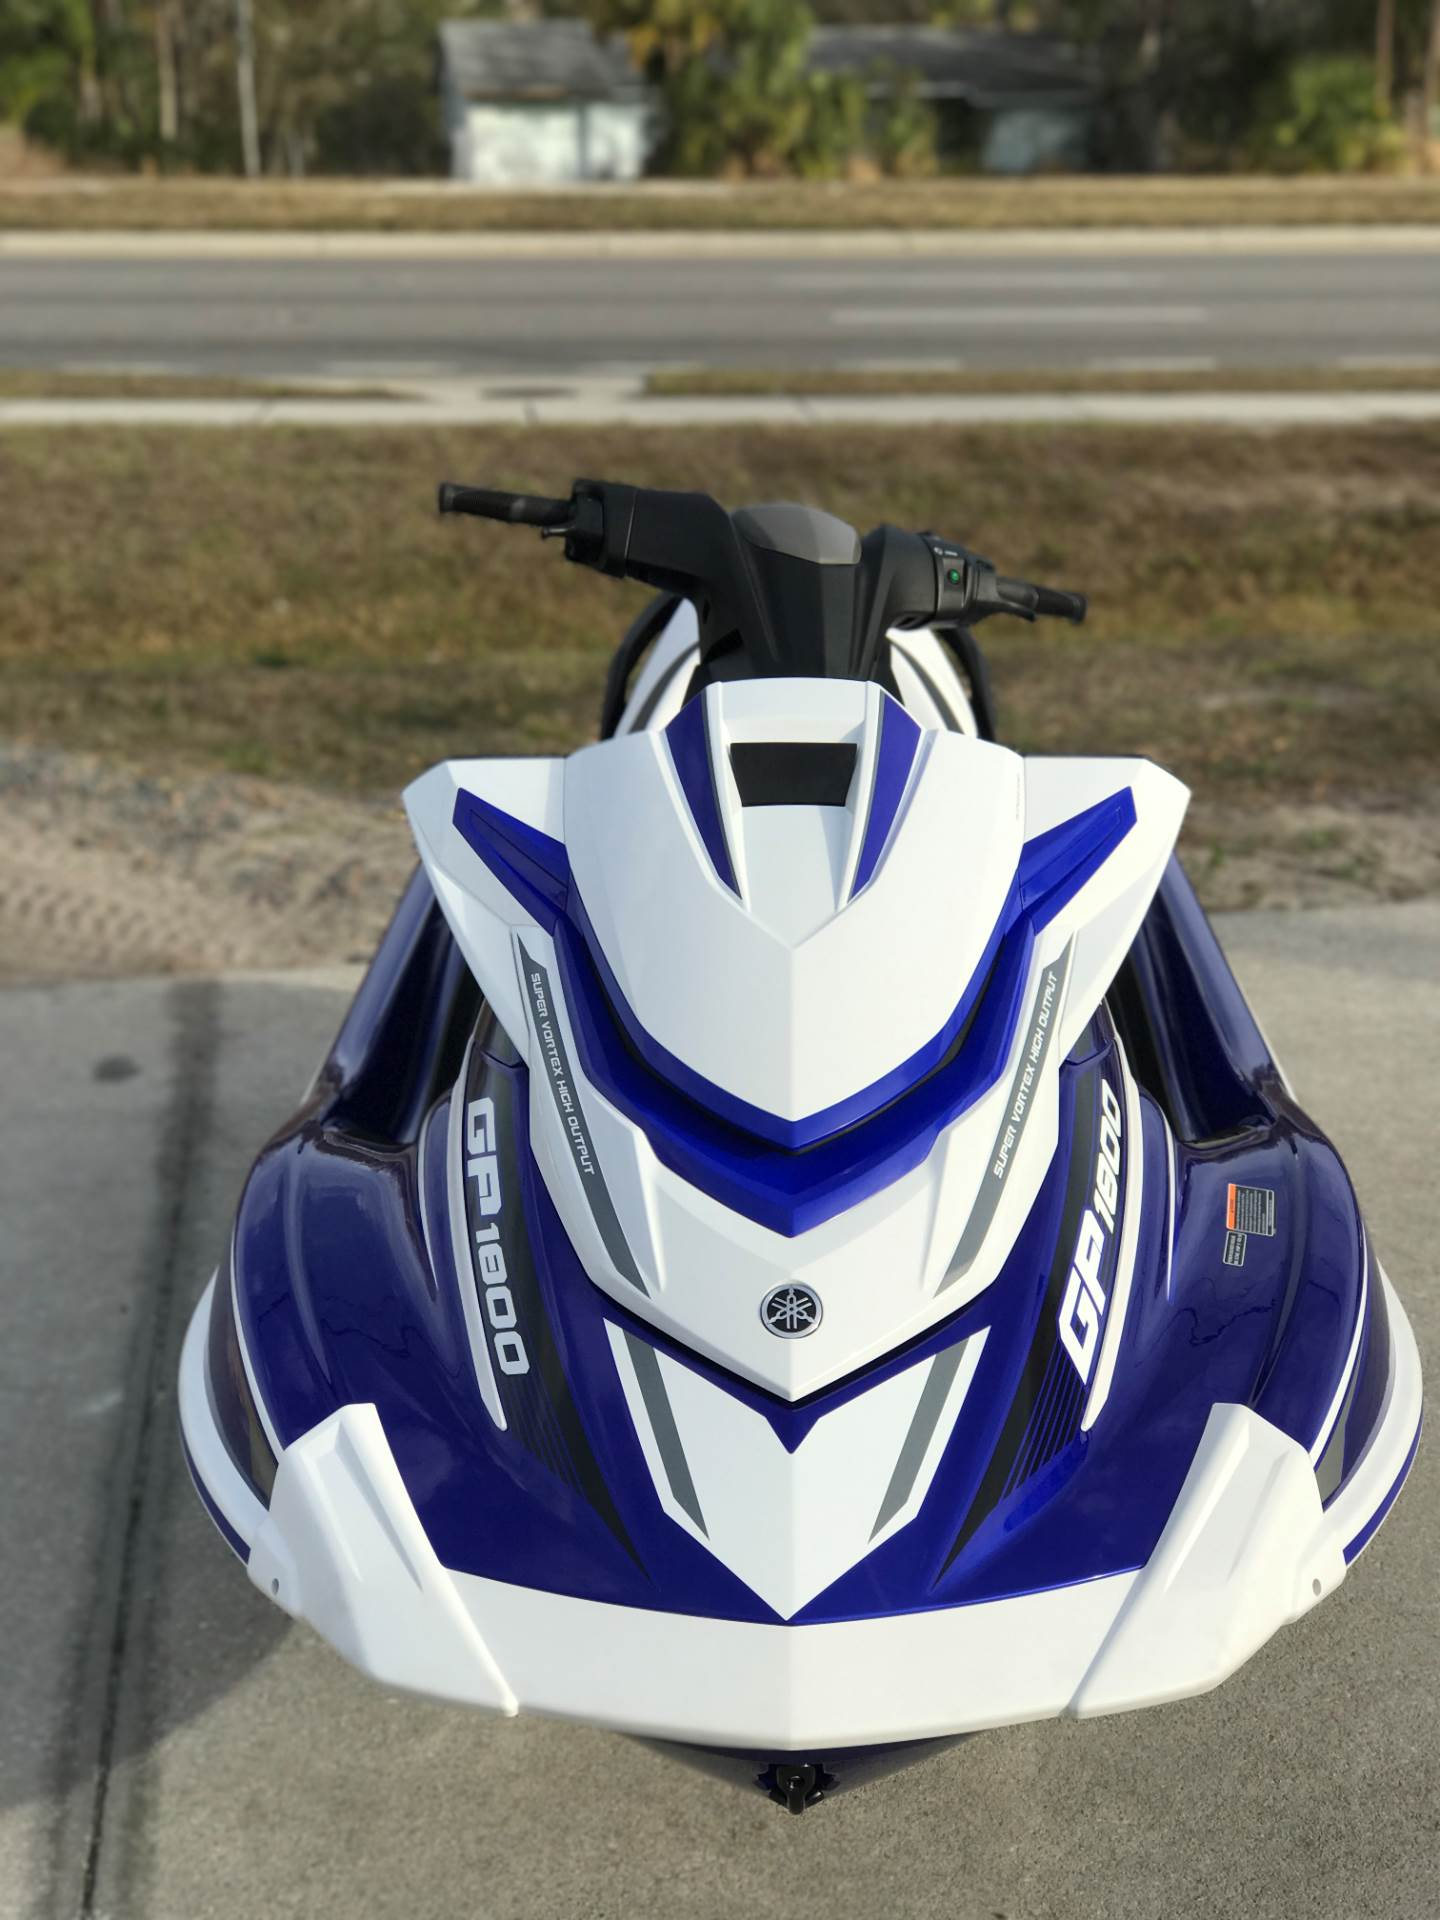 2018 Yamaha GP1800 in Orlando, Florida - Photo 7